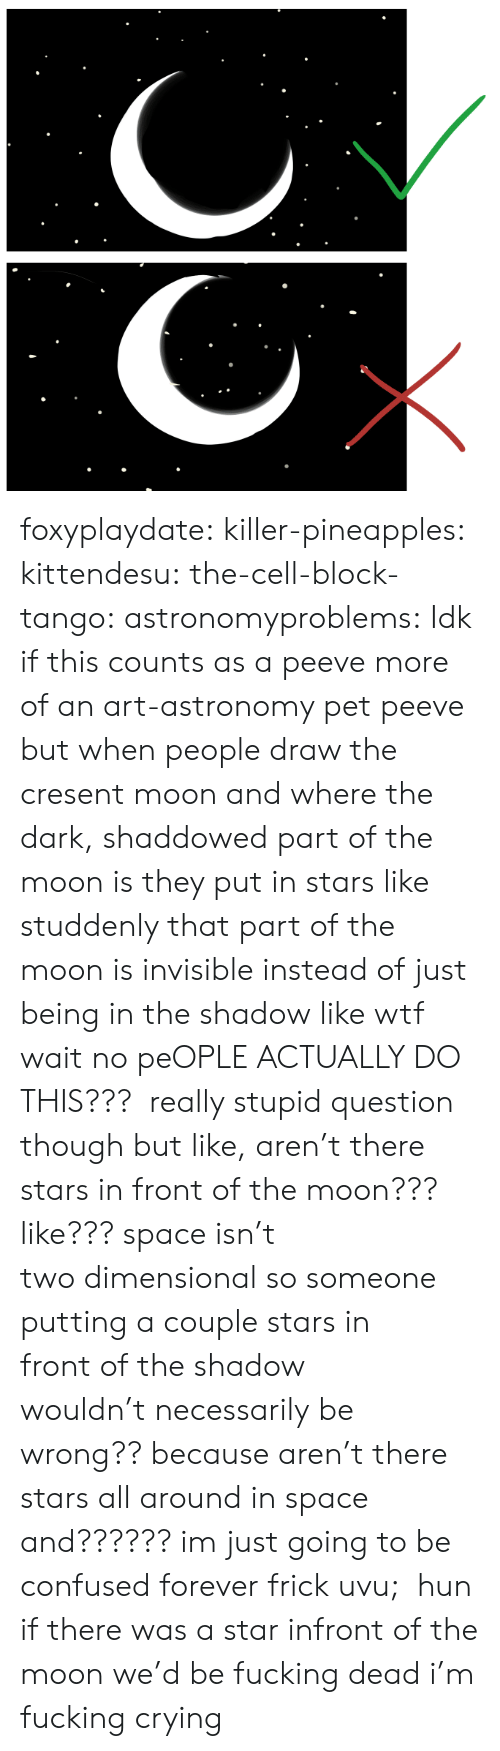 Dimensional: foxyplaydate:  killer-pineapples:  kittendesu:  the-cell-block-tango:  astronomyproblems:  Idk if this counts as a peeve more of an art-astronomy pet peeve but when people draw the cresent moon and where the dark, shaddowed part of the moon is they put in stars like studdenly that part of the moon is invisible instead of just being in the shadow like wtf  wait no peOPLE ACTUALLY DO THIS???  really stupid question though but like, aren't there stars in front of the moon??? like??? space isn't twodimensionalso someone putting a couple starsin frontof the shadow wouldn'tnecessarilybe wrong?? because aren't there stars all around in space and?????? im just going to be confused forever frick uvu;  hun if there was a star infront of the moon we'd be fucking dead  i'm fucking crying